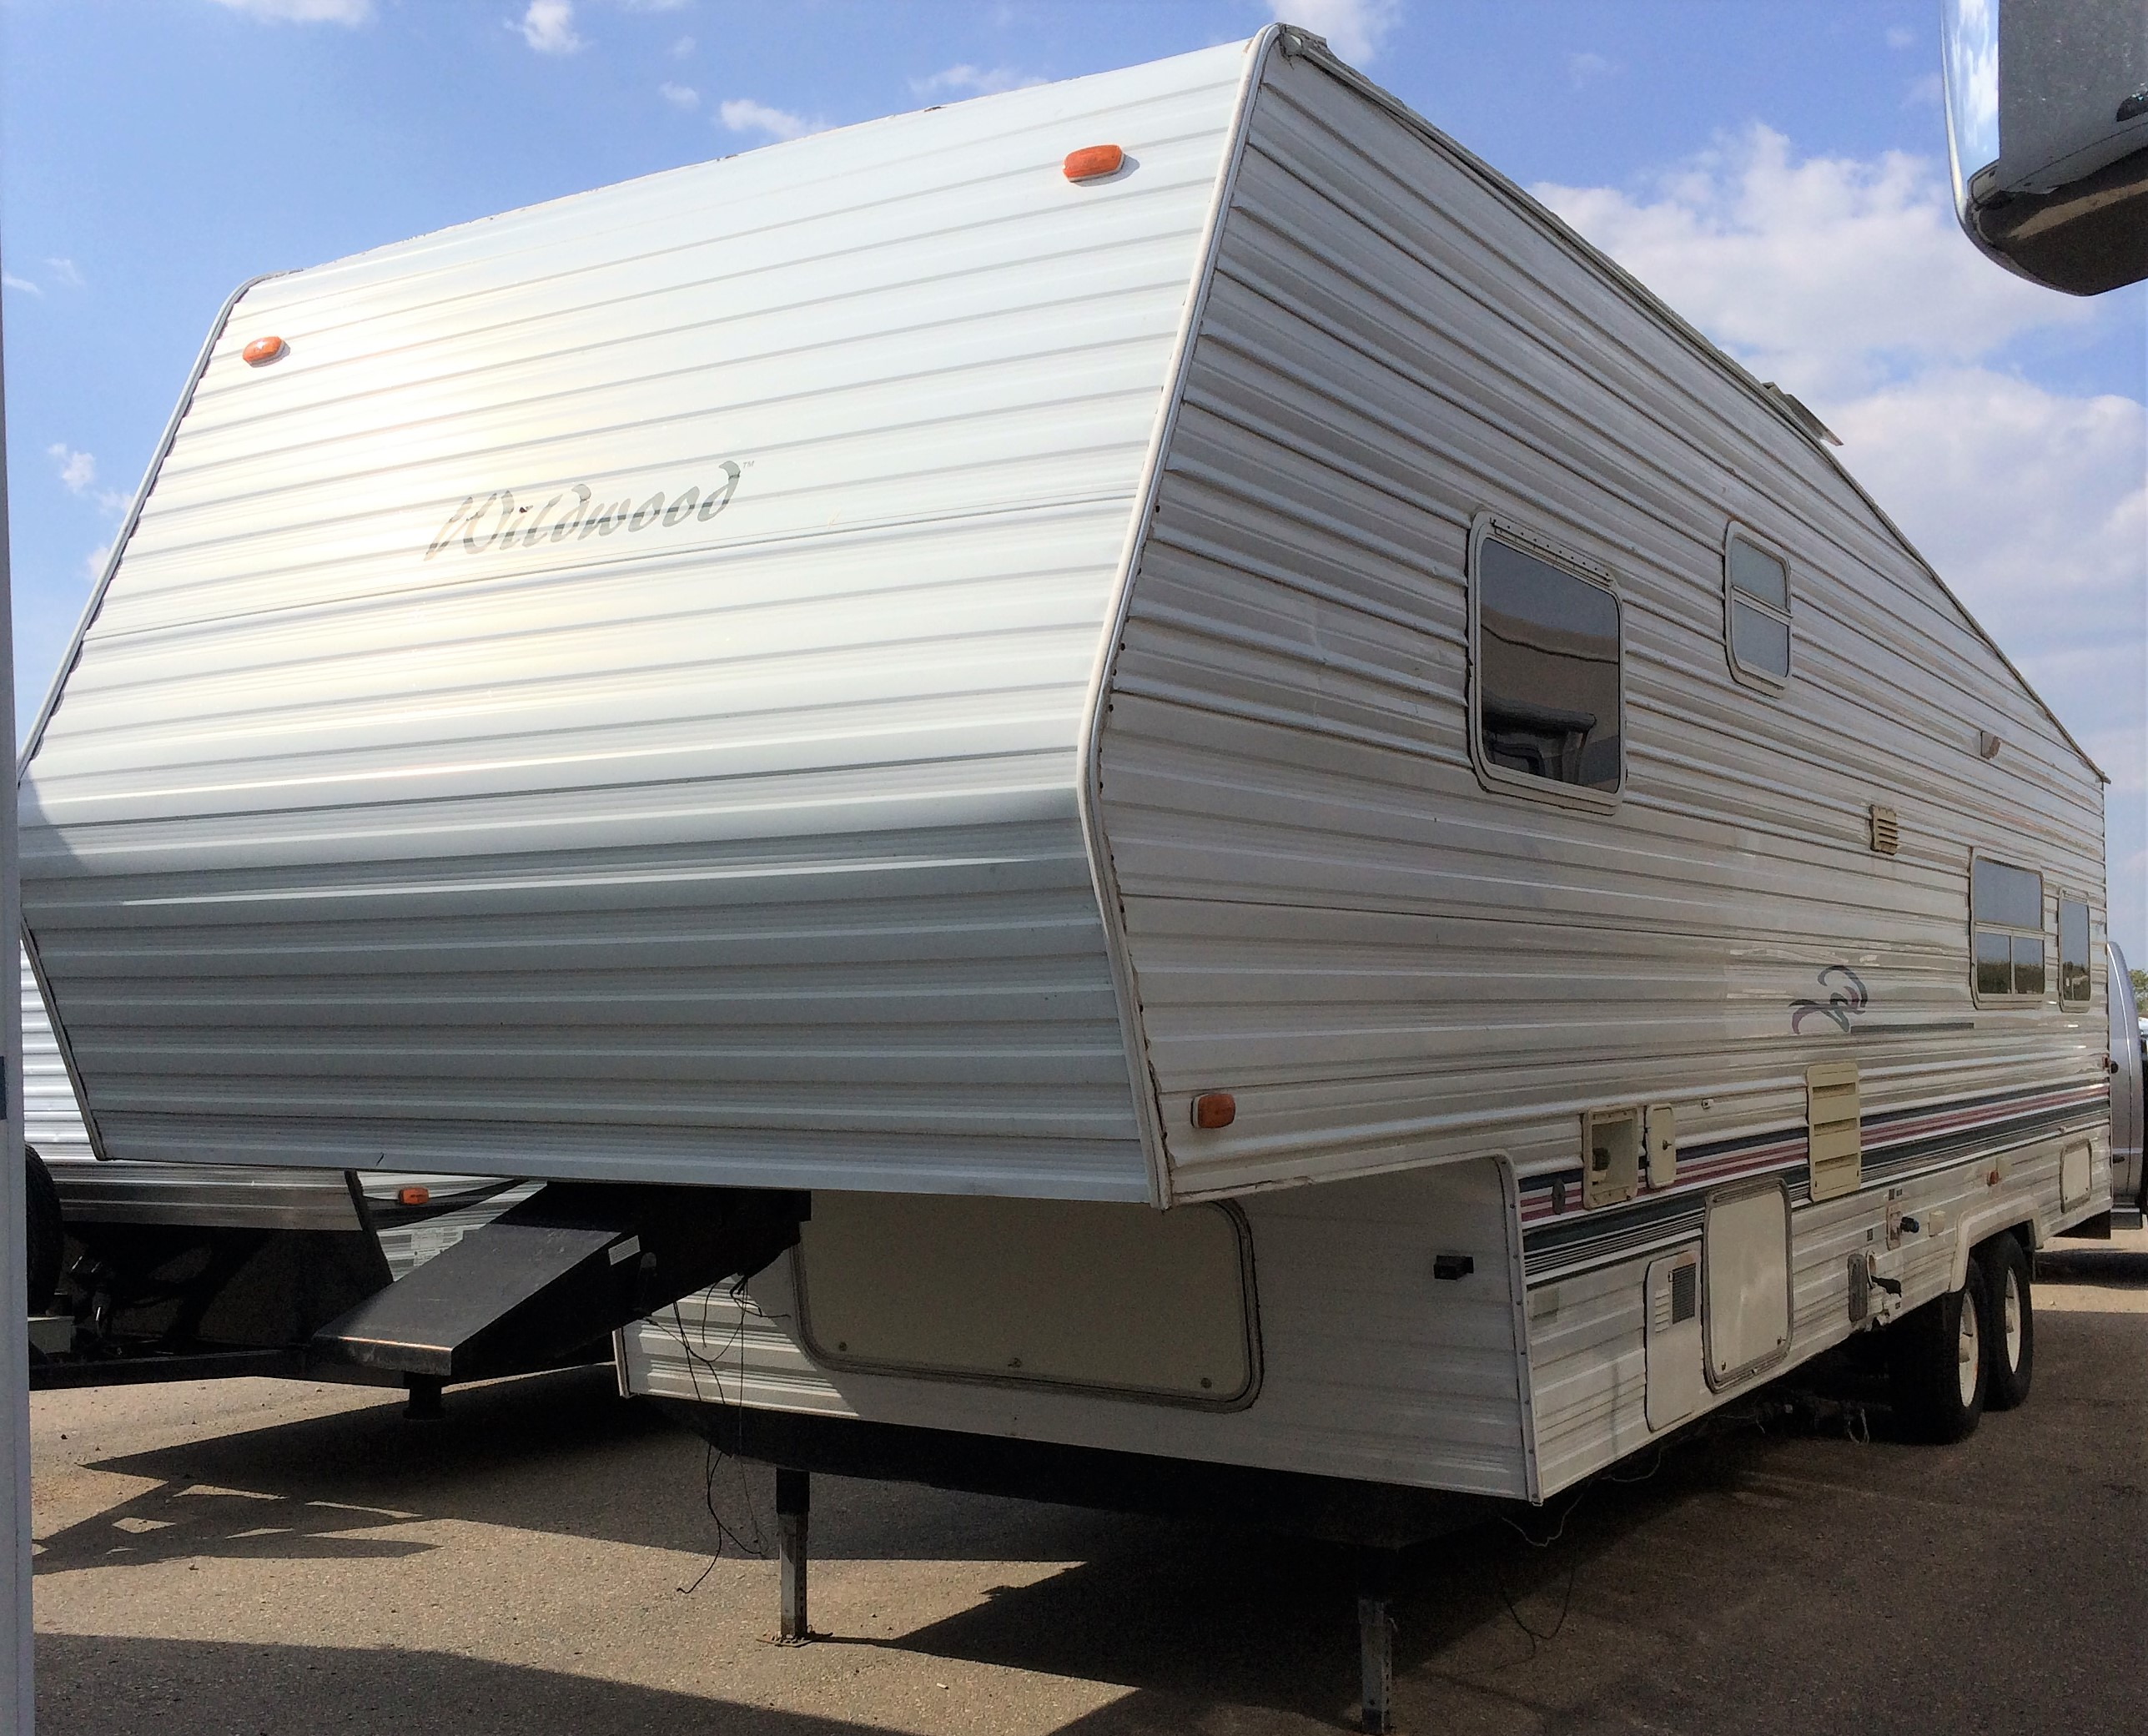 Used RVs For Sale - Swenson Marine & RV